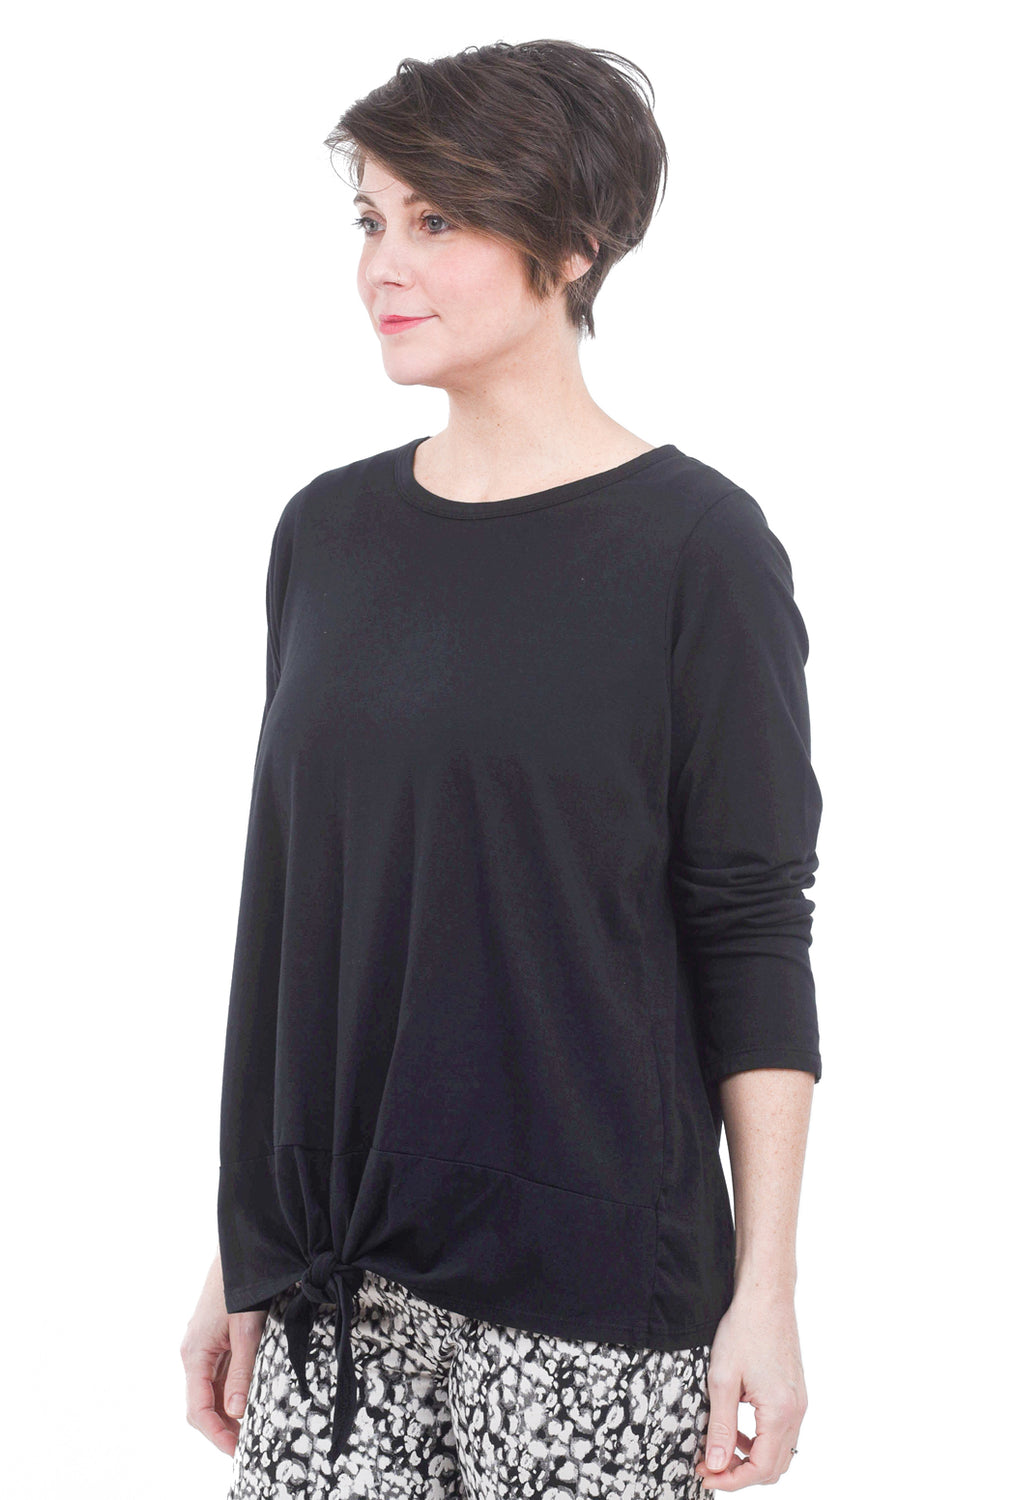 Oro Bonito Knot Hem Detail Top, Black One Size Black